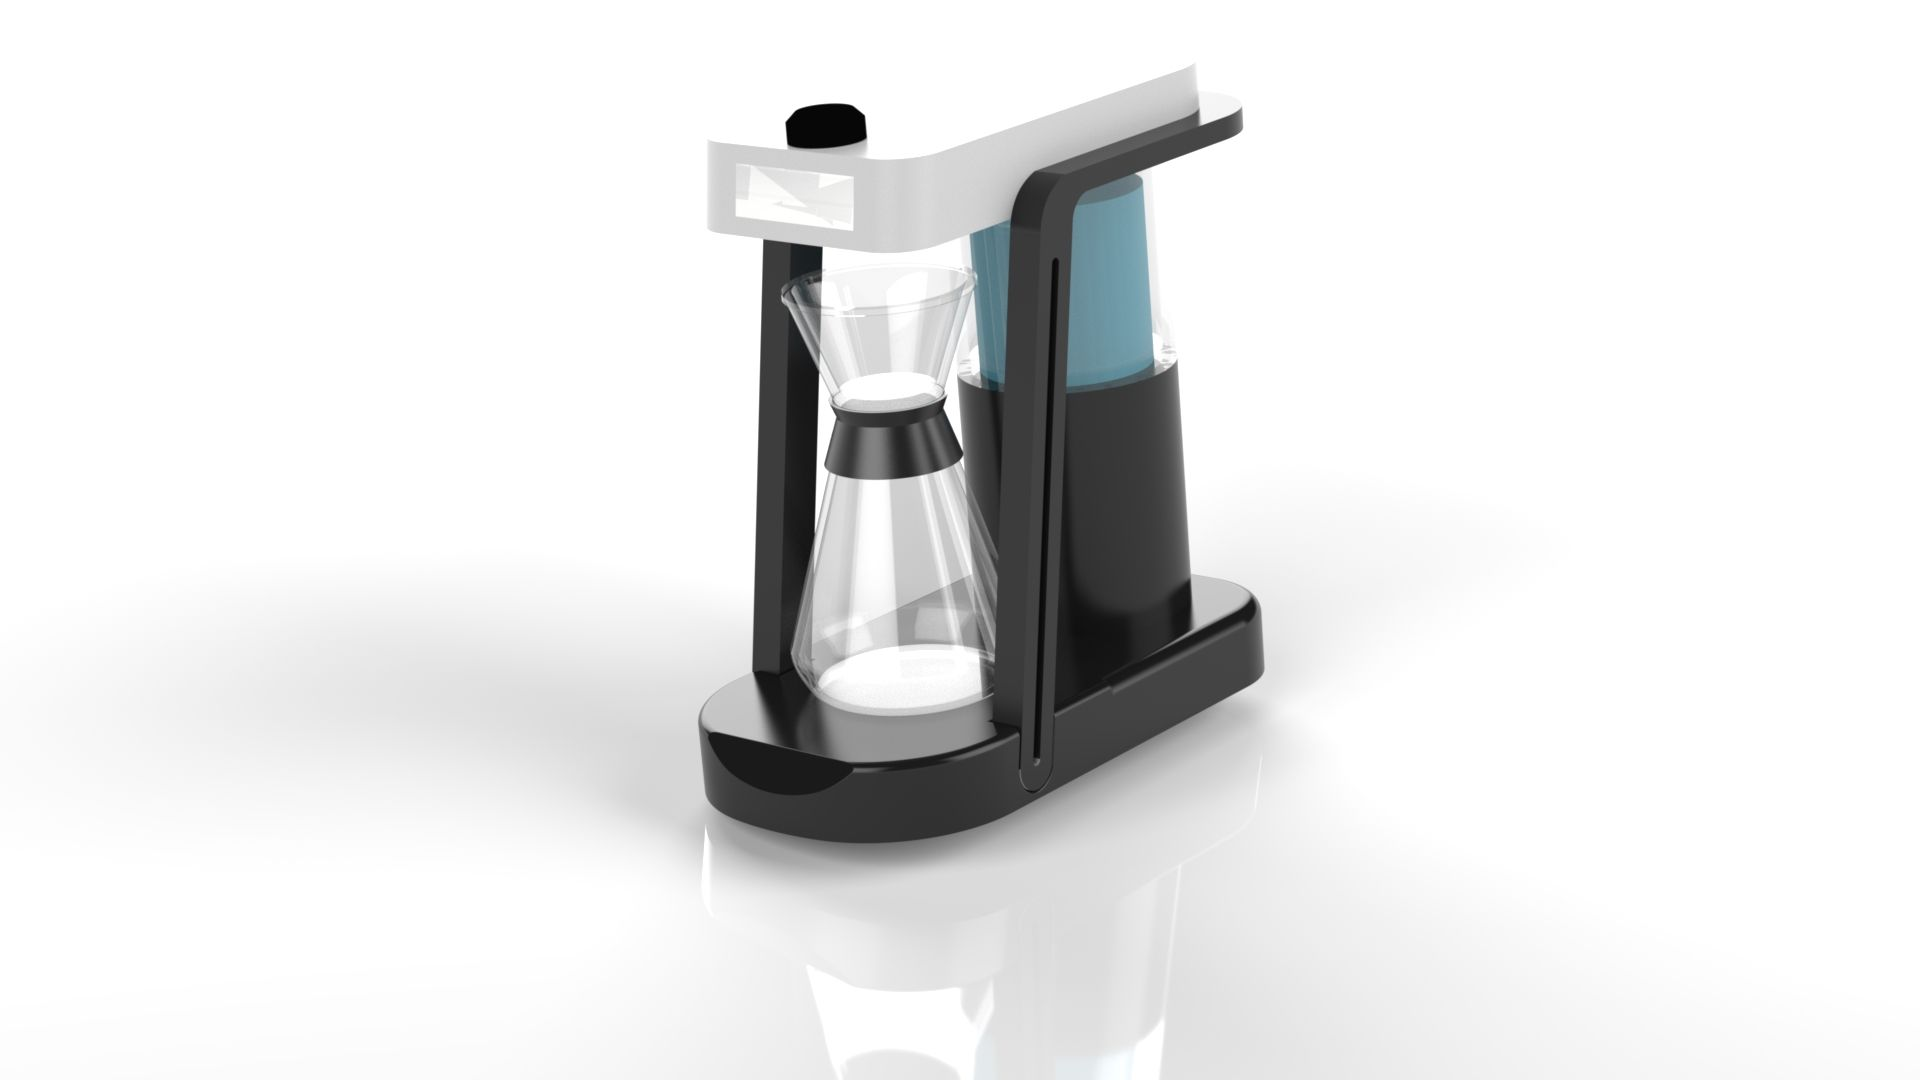 Coffe-maker-18-lcs-3500-3500